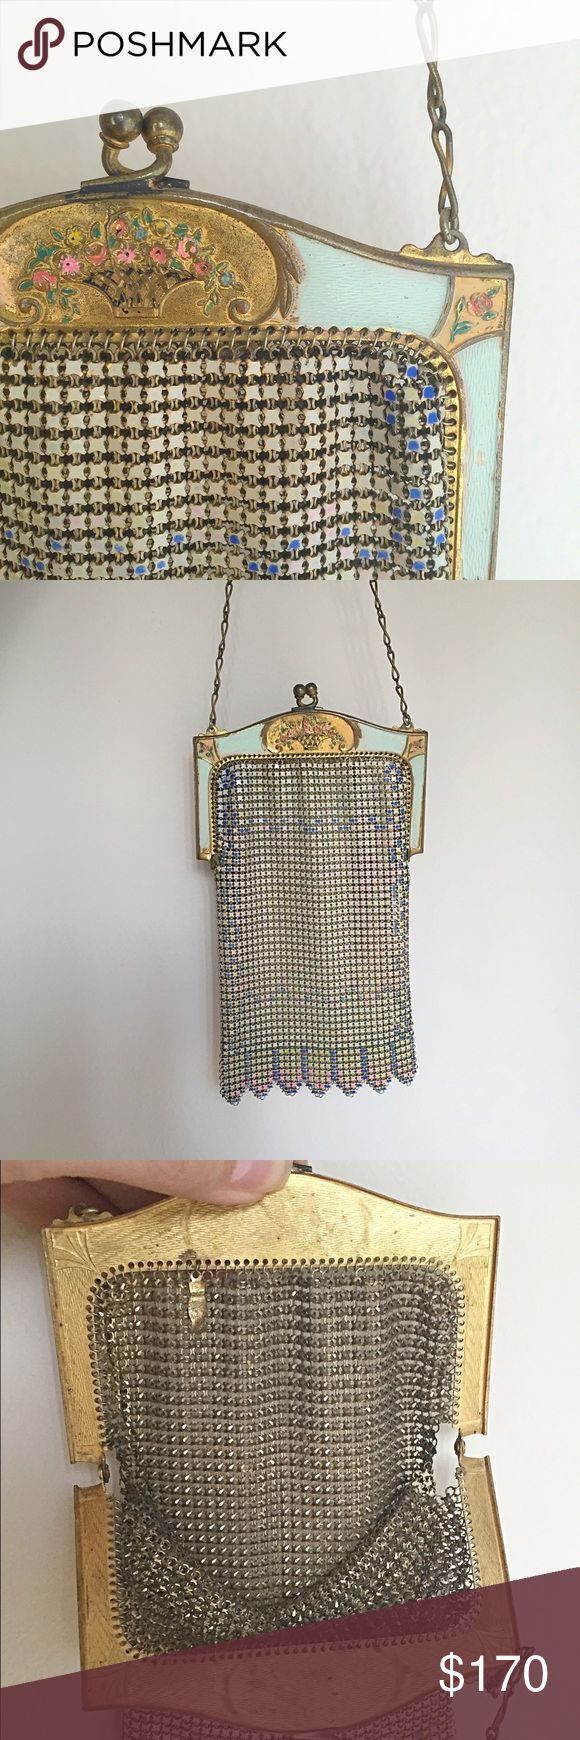 RARE 1920s Whiting & Davis Art Nouveau Mesh Purse RARE ornate enameled Art Nouveau frame on this 1920s Whiting and Davis Armor enameled mesh purse. The frame background is a light mint; normal wear to enameled frame; enamel color on mesh bag has significant wear as shown; remnants are pink, blue, and light yellow-cream. Bend as noted to link in chain. Kiss lock in perfect working condition; gap/hole in mesh near each hinge (common in these bags); one spot rust (tiny) to mesh as seen. Last…